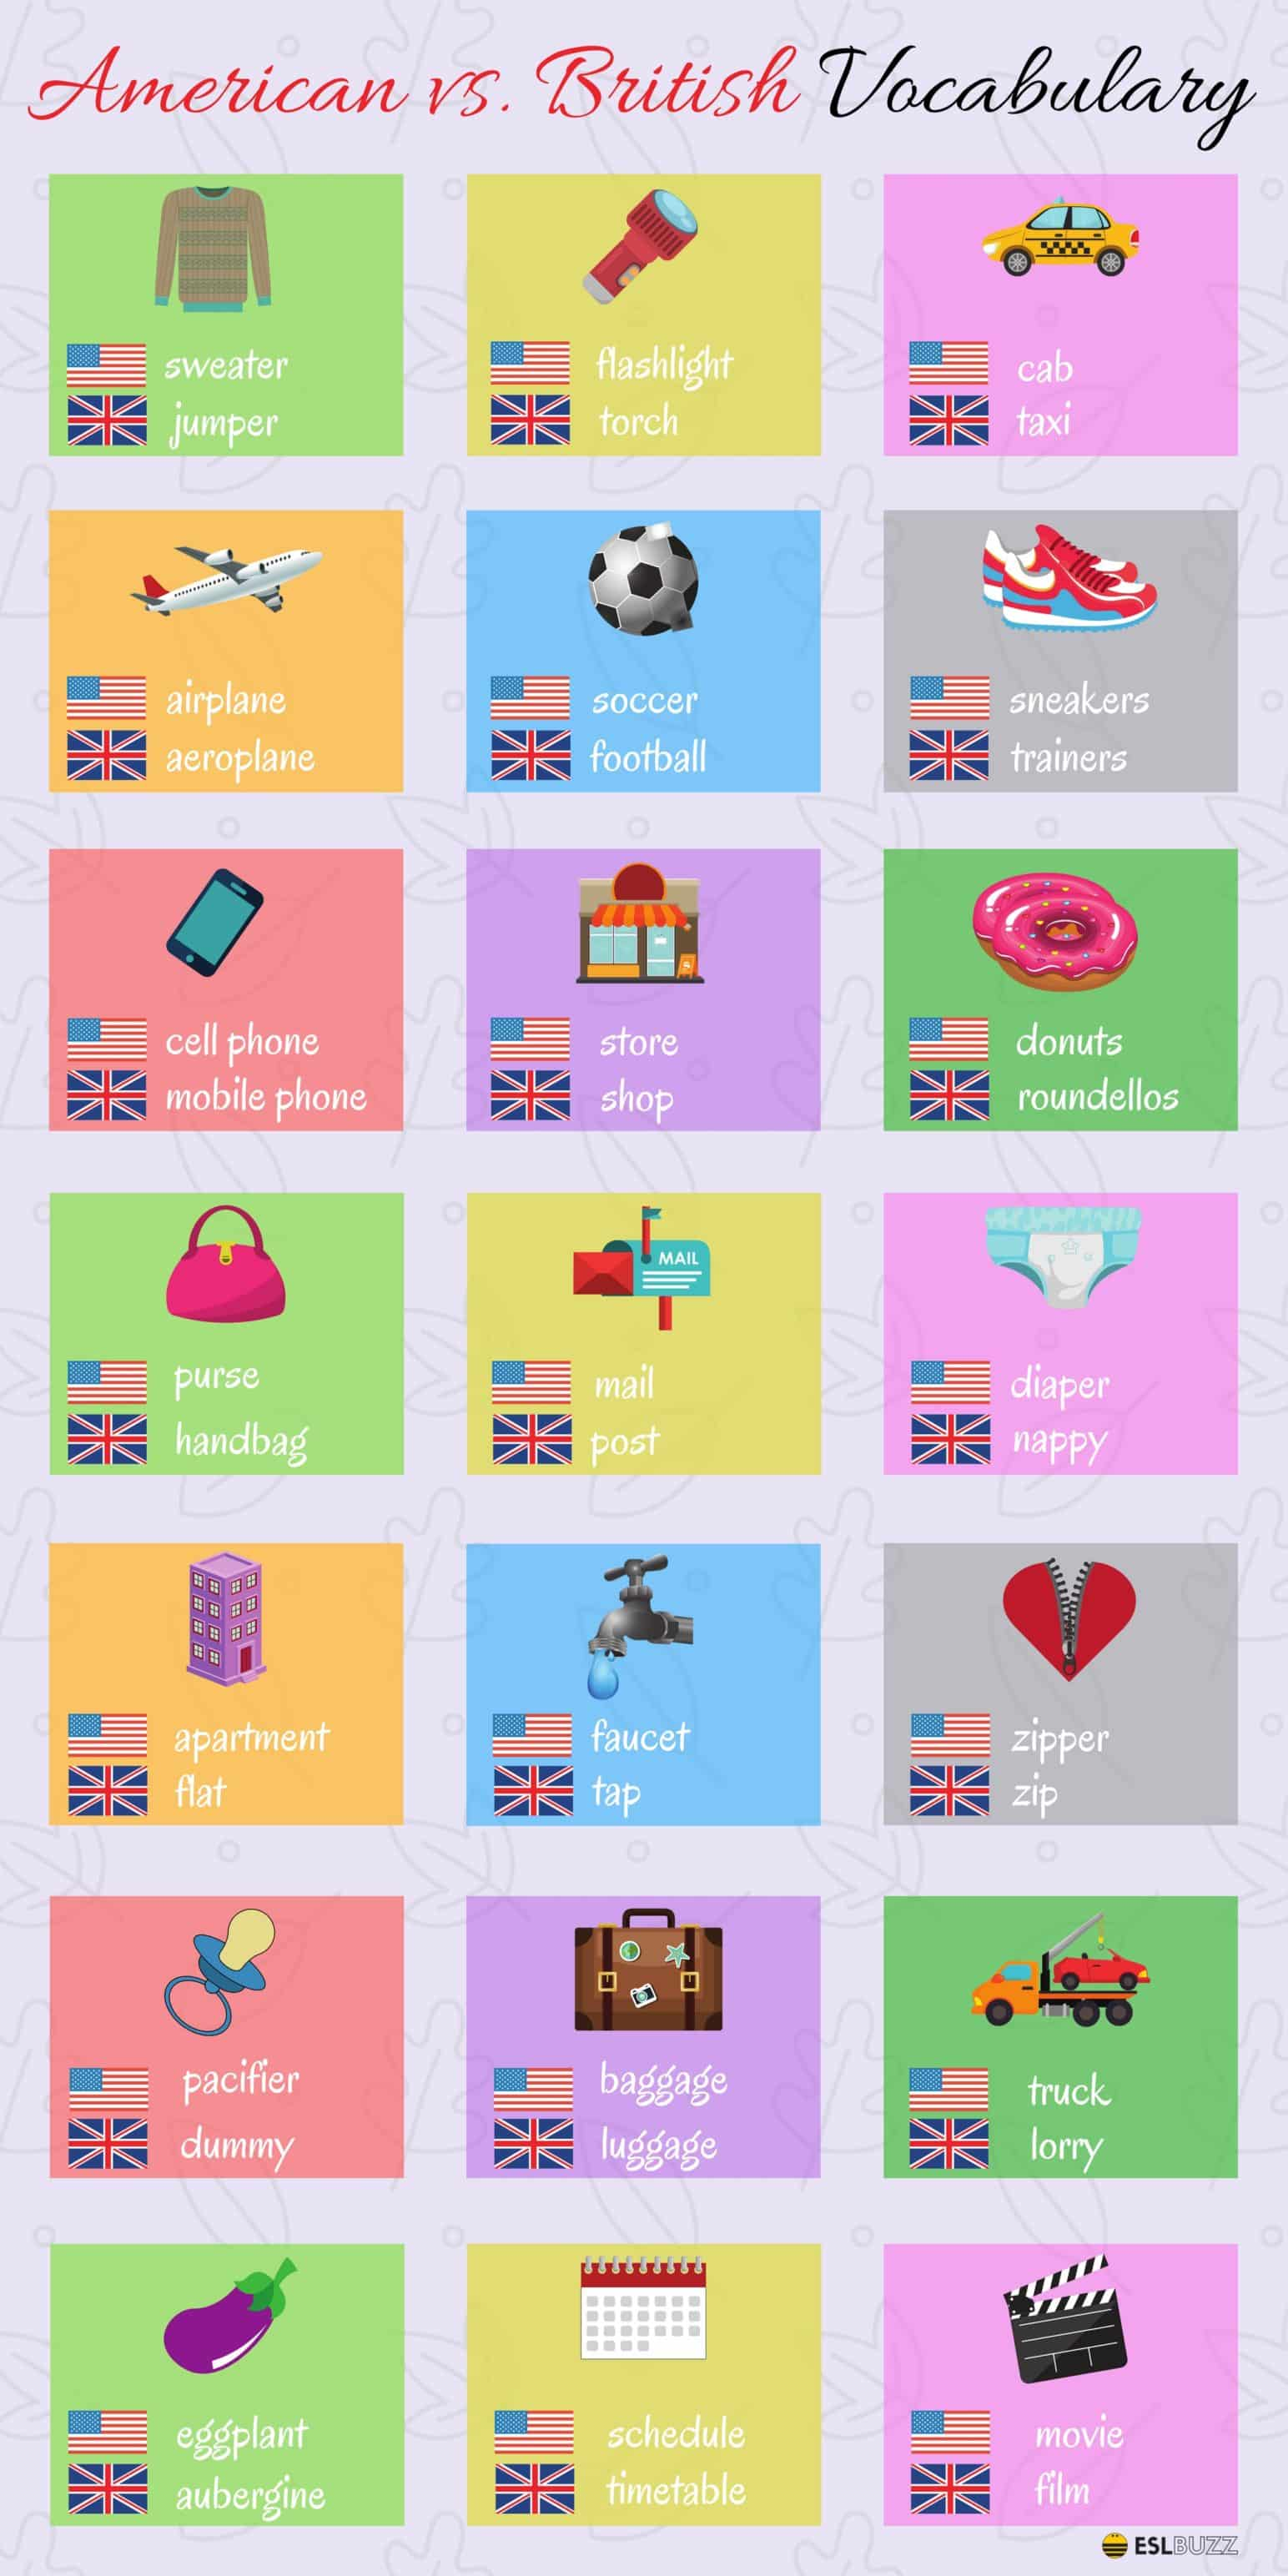 British vs. American English: What are the Differences? 3